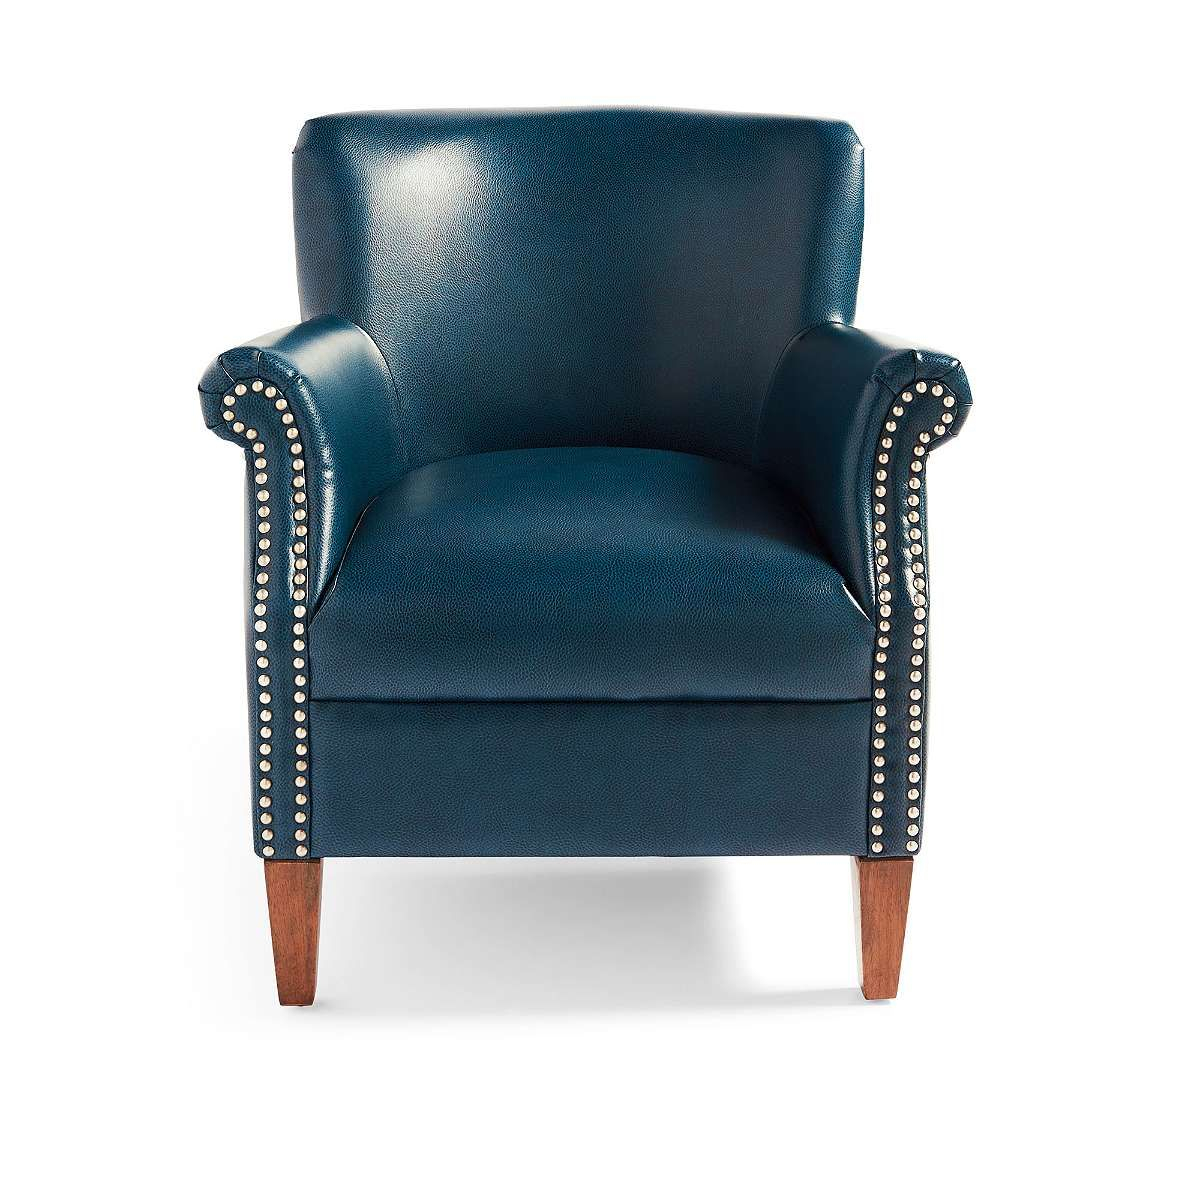 Grandin Road; Caspian Blue $399. | Meadows/waiting Room | Pinterest Regarding Grandin Leather Sofa Chairs (Photo 4 of 20)